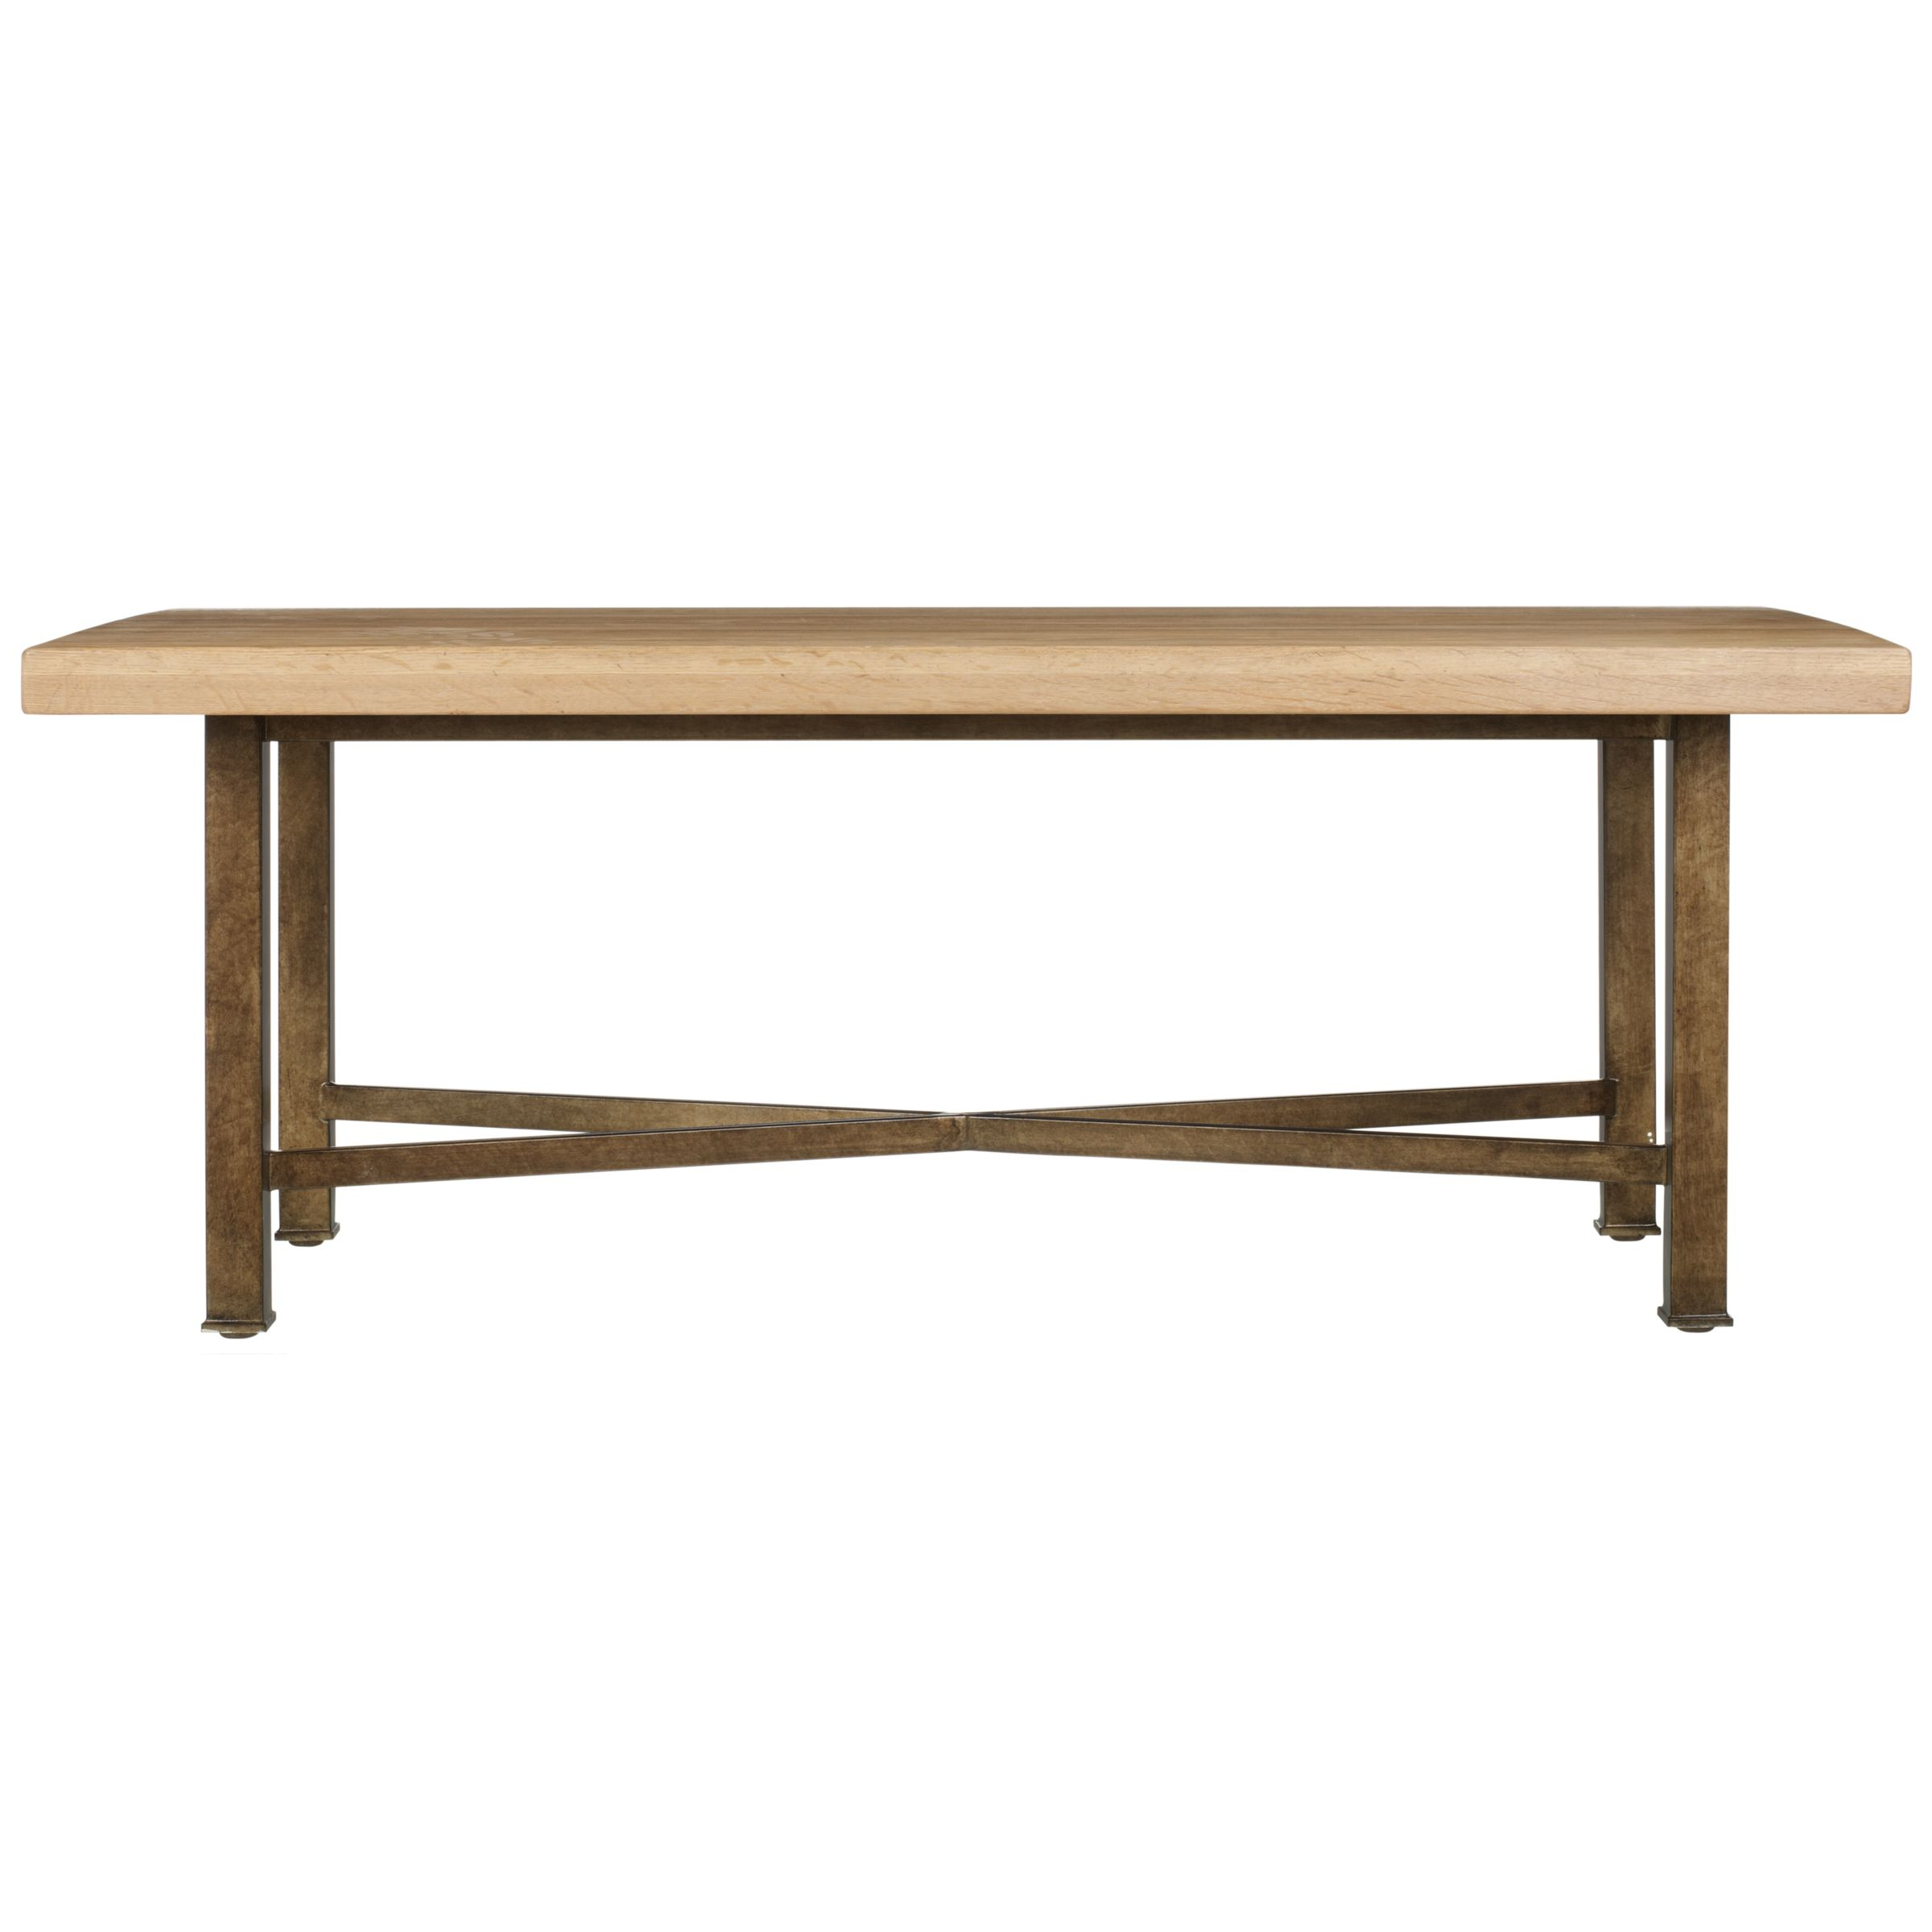 alto coffee tables : 230941548 from www.comparestoreprices.co.uk size 2400 x 2400 jpeg 146kB